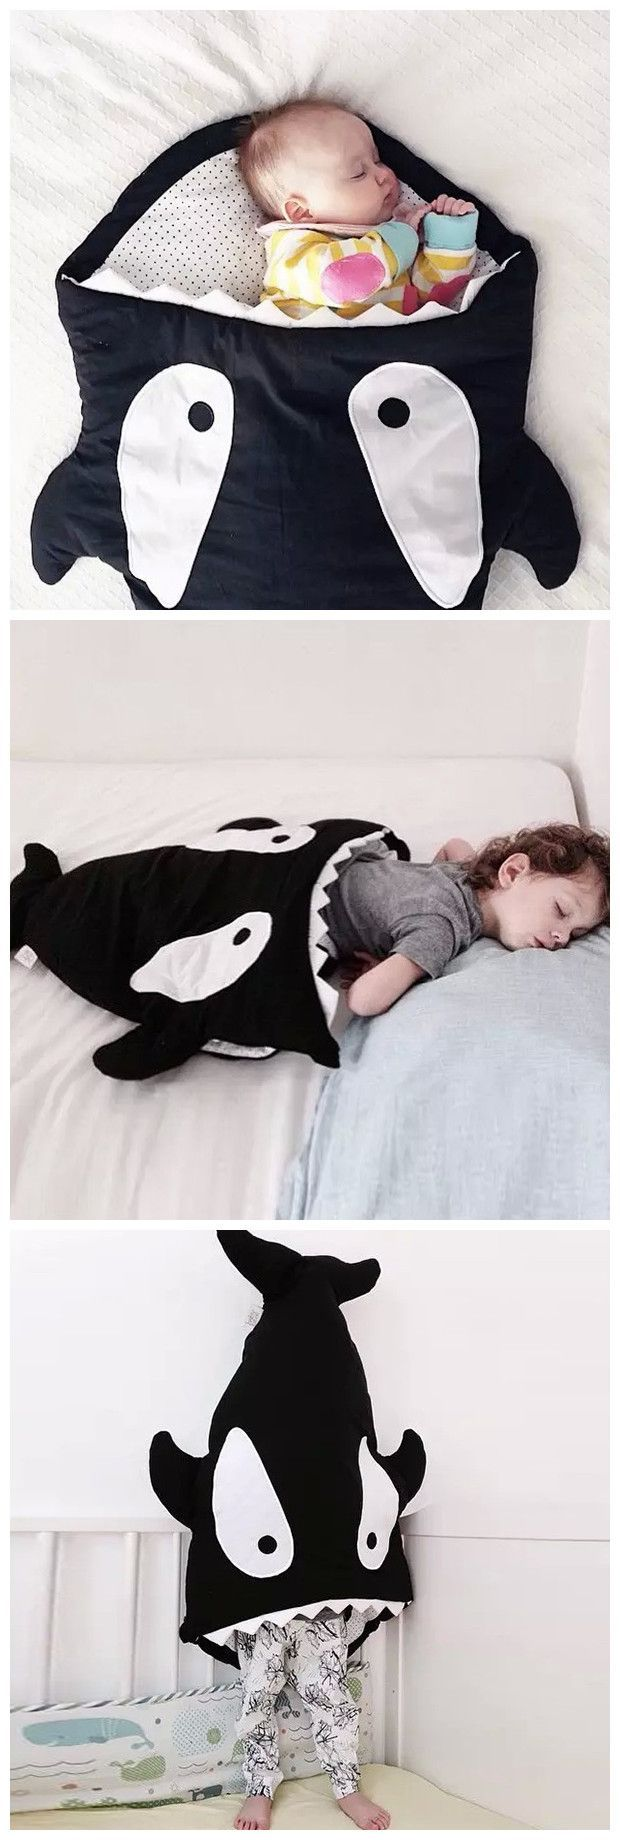 Cute Thick Shark Blanket by Blankie Tails For YOUR DEAR BABY - sounds like a sewing project to me